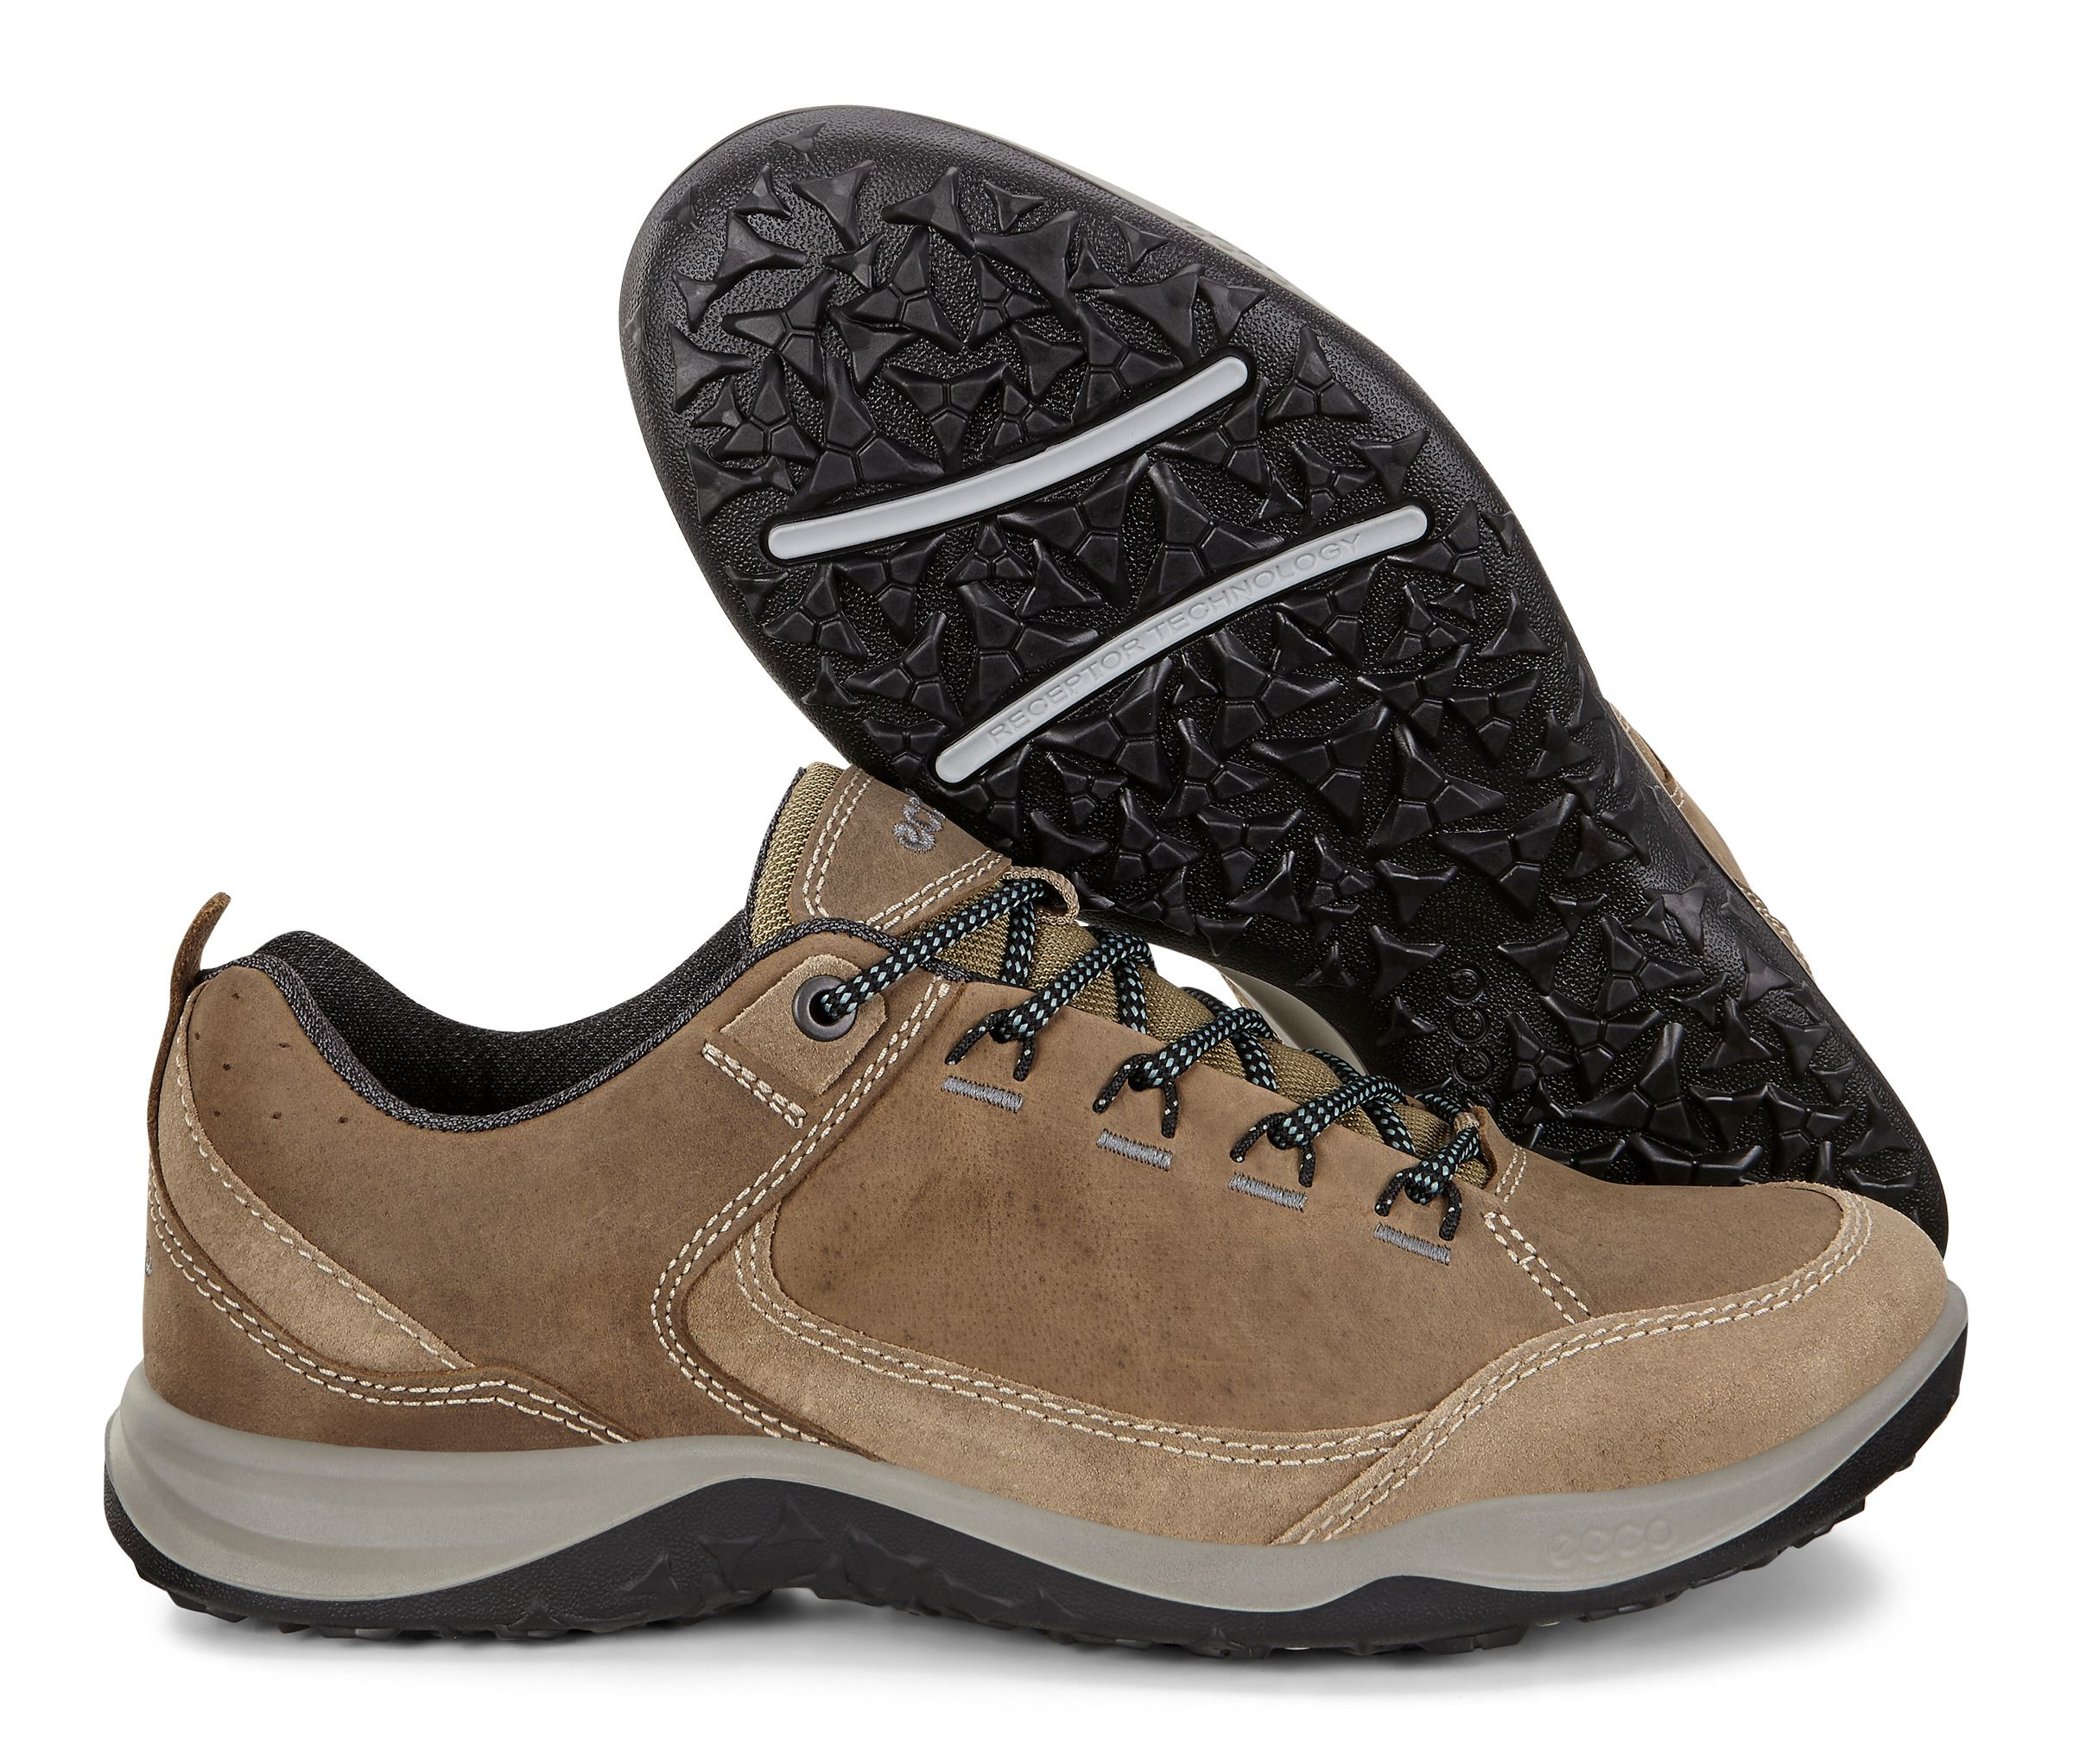 ecco discount on shoes online, ECCO BIOM Fjuel Sport Active